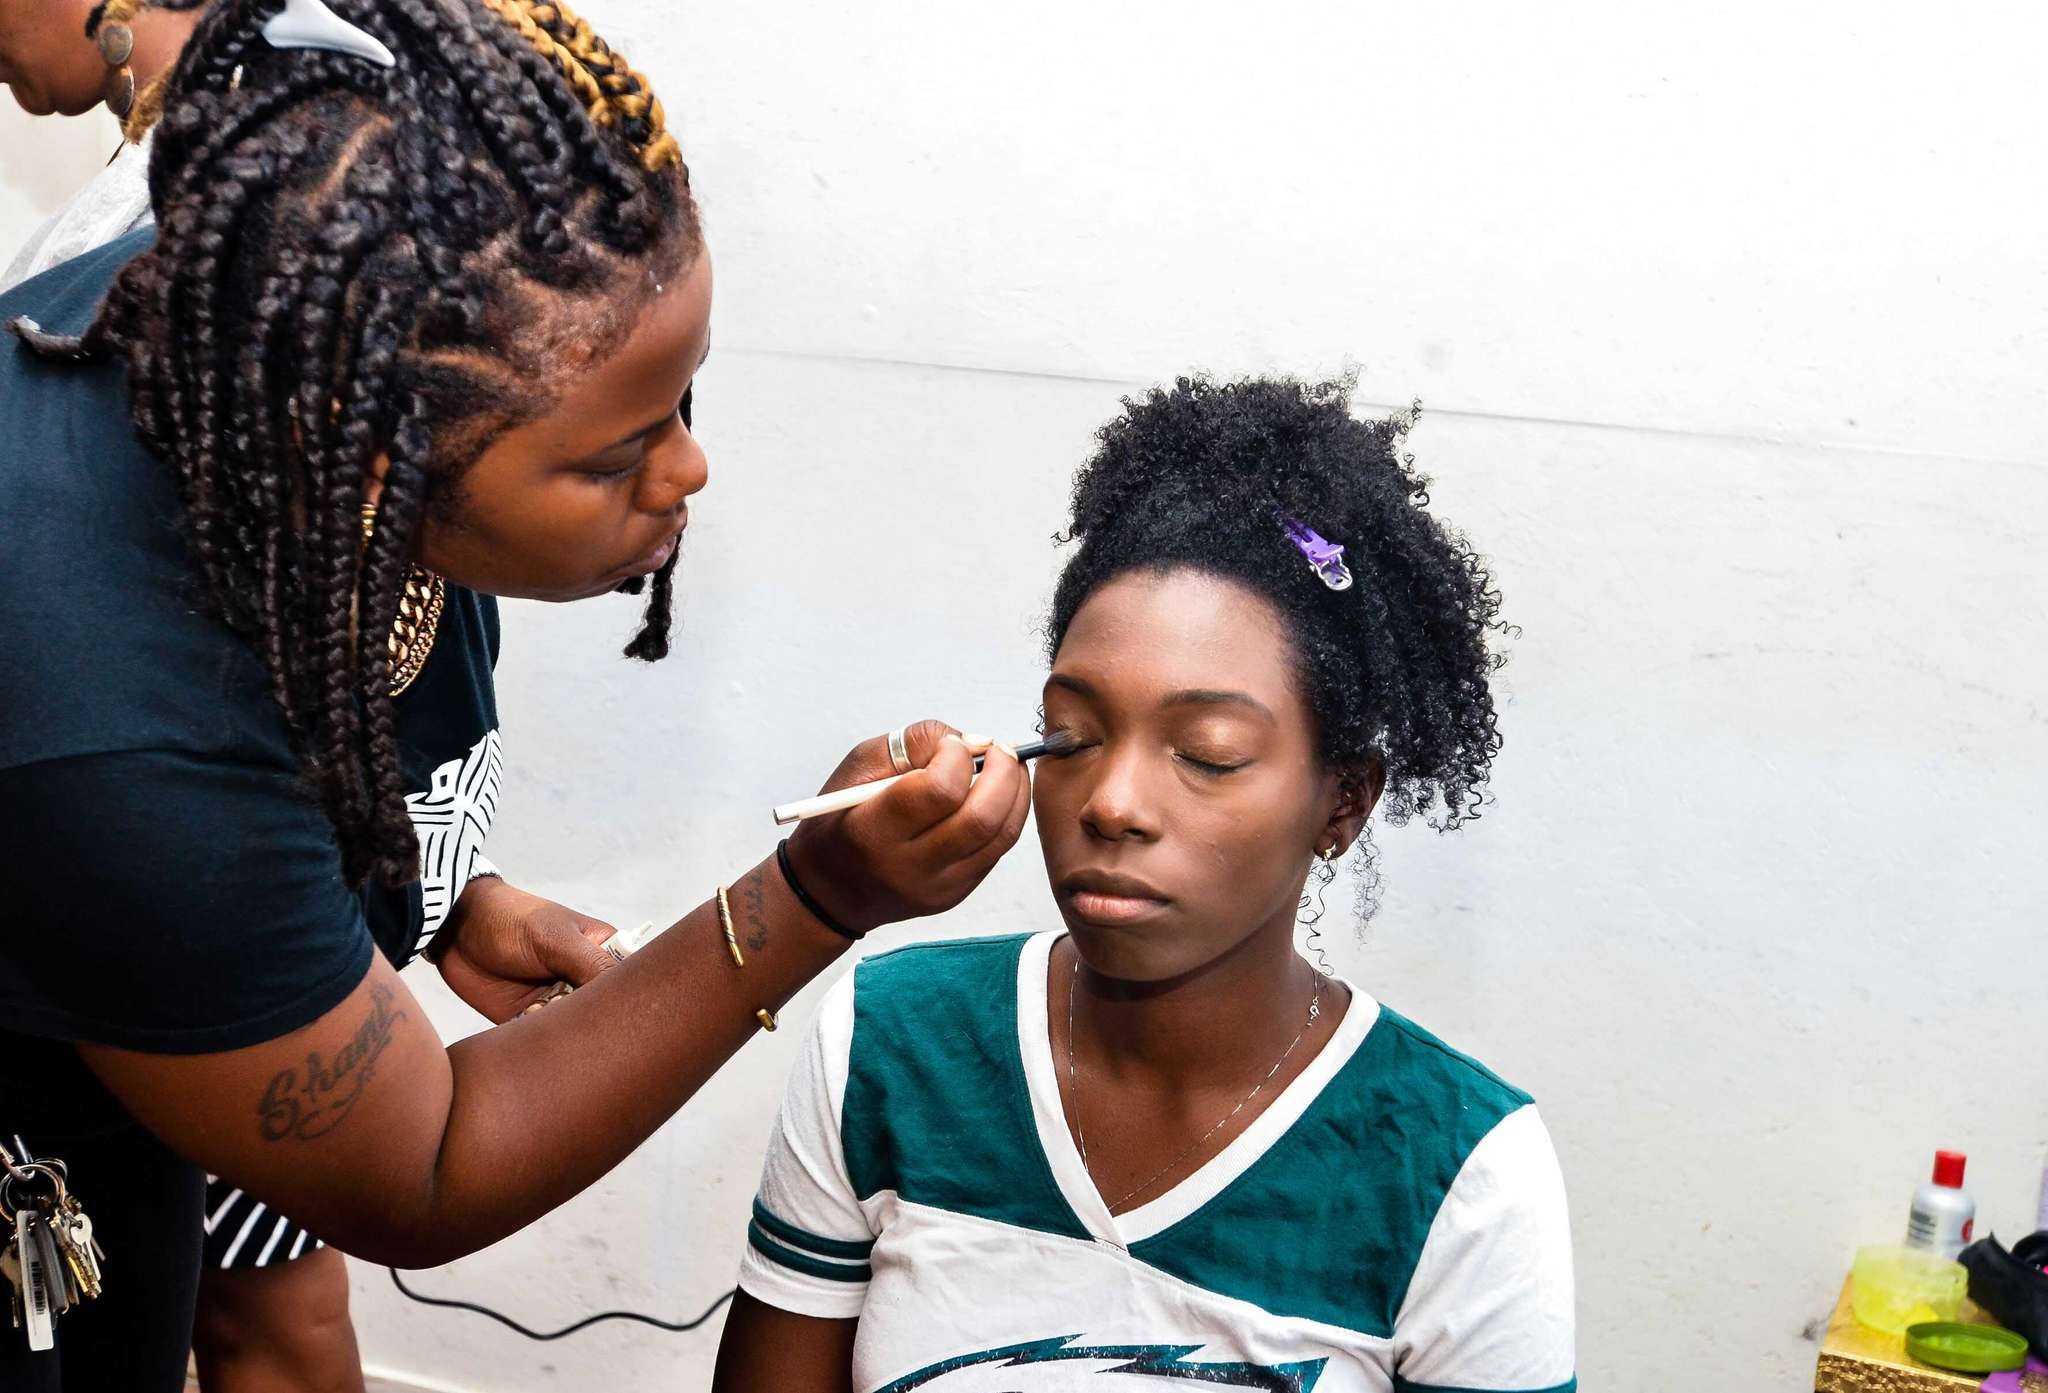 TresseNoire stylist Ve Dorsey applies makeup to client Damike Barr of Philadelphia. App TresseNoire offers African American clients wherever they are chemical-free styles like braids, locks, and Senegalese twists.